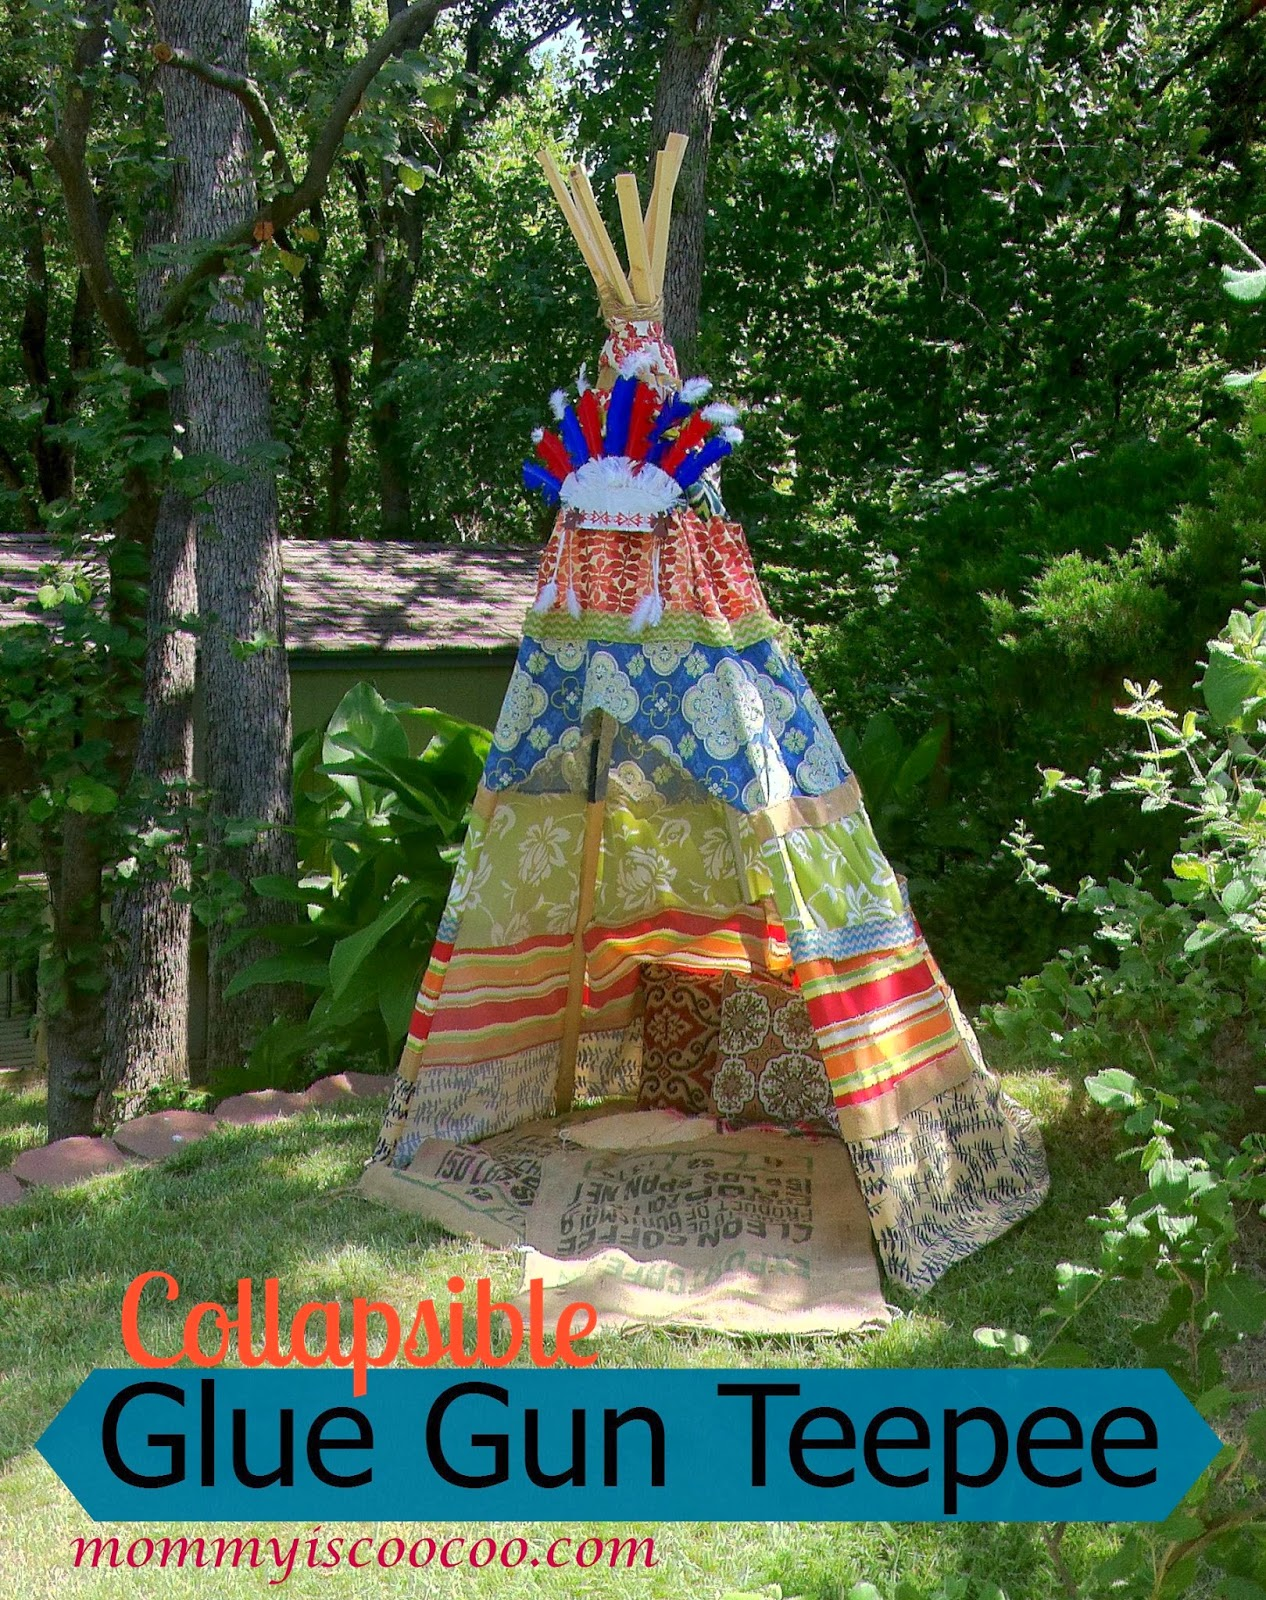 collapsible, glue gun teepee, kids teepee, from mommy is coocoo